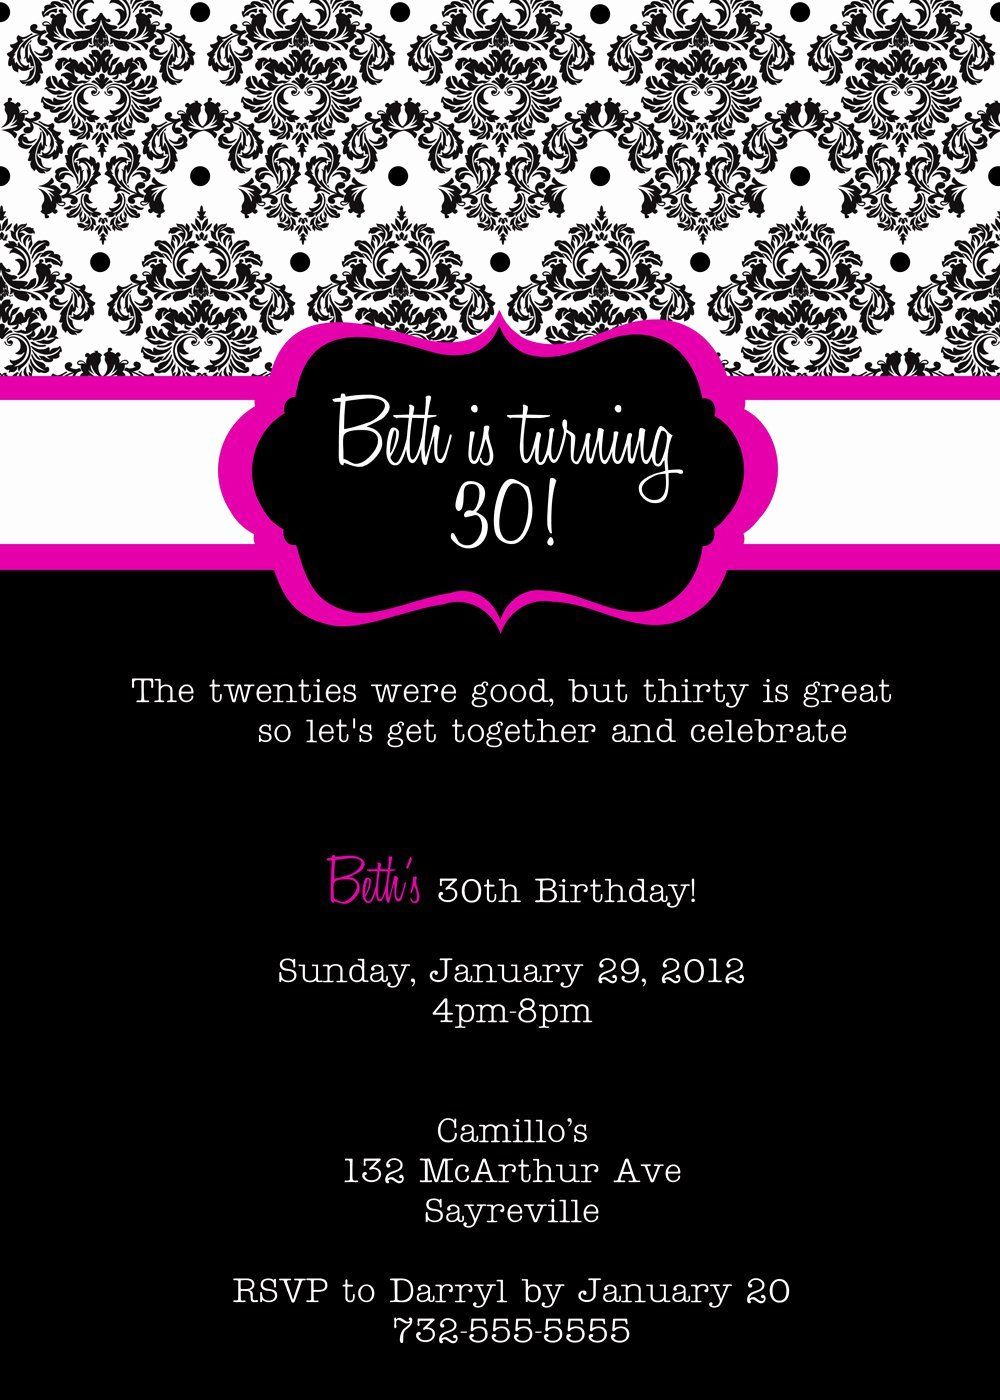 Free Birthday Party Invitation Templates Lovely Free Printable Birt 30th Birthday Party Invitations 16th Birthday Invitations Birthday Invitation Card Template